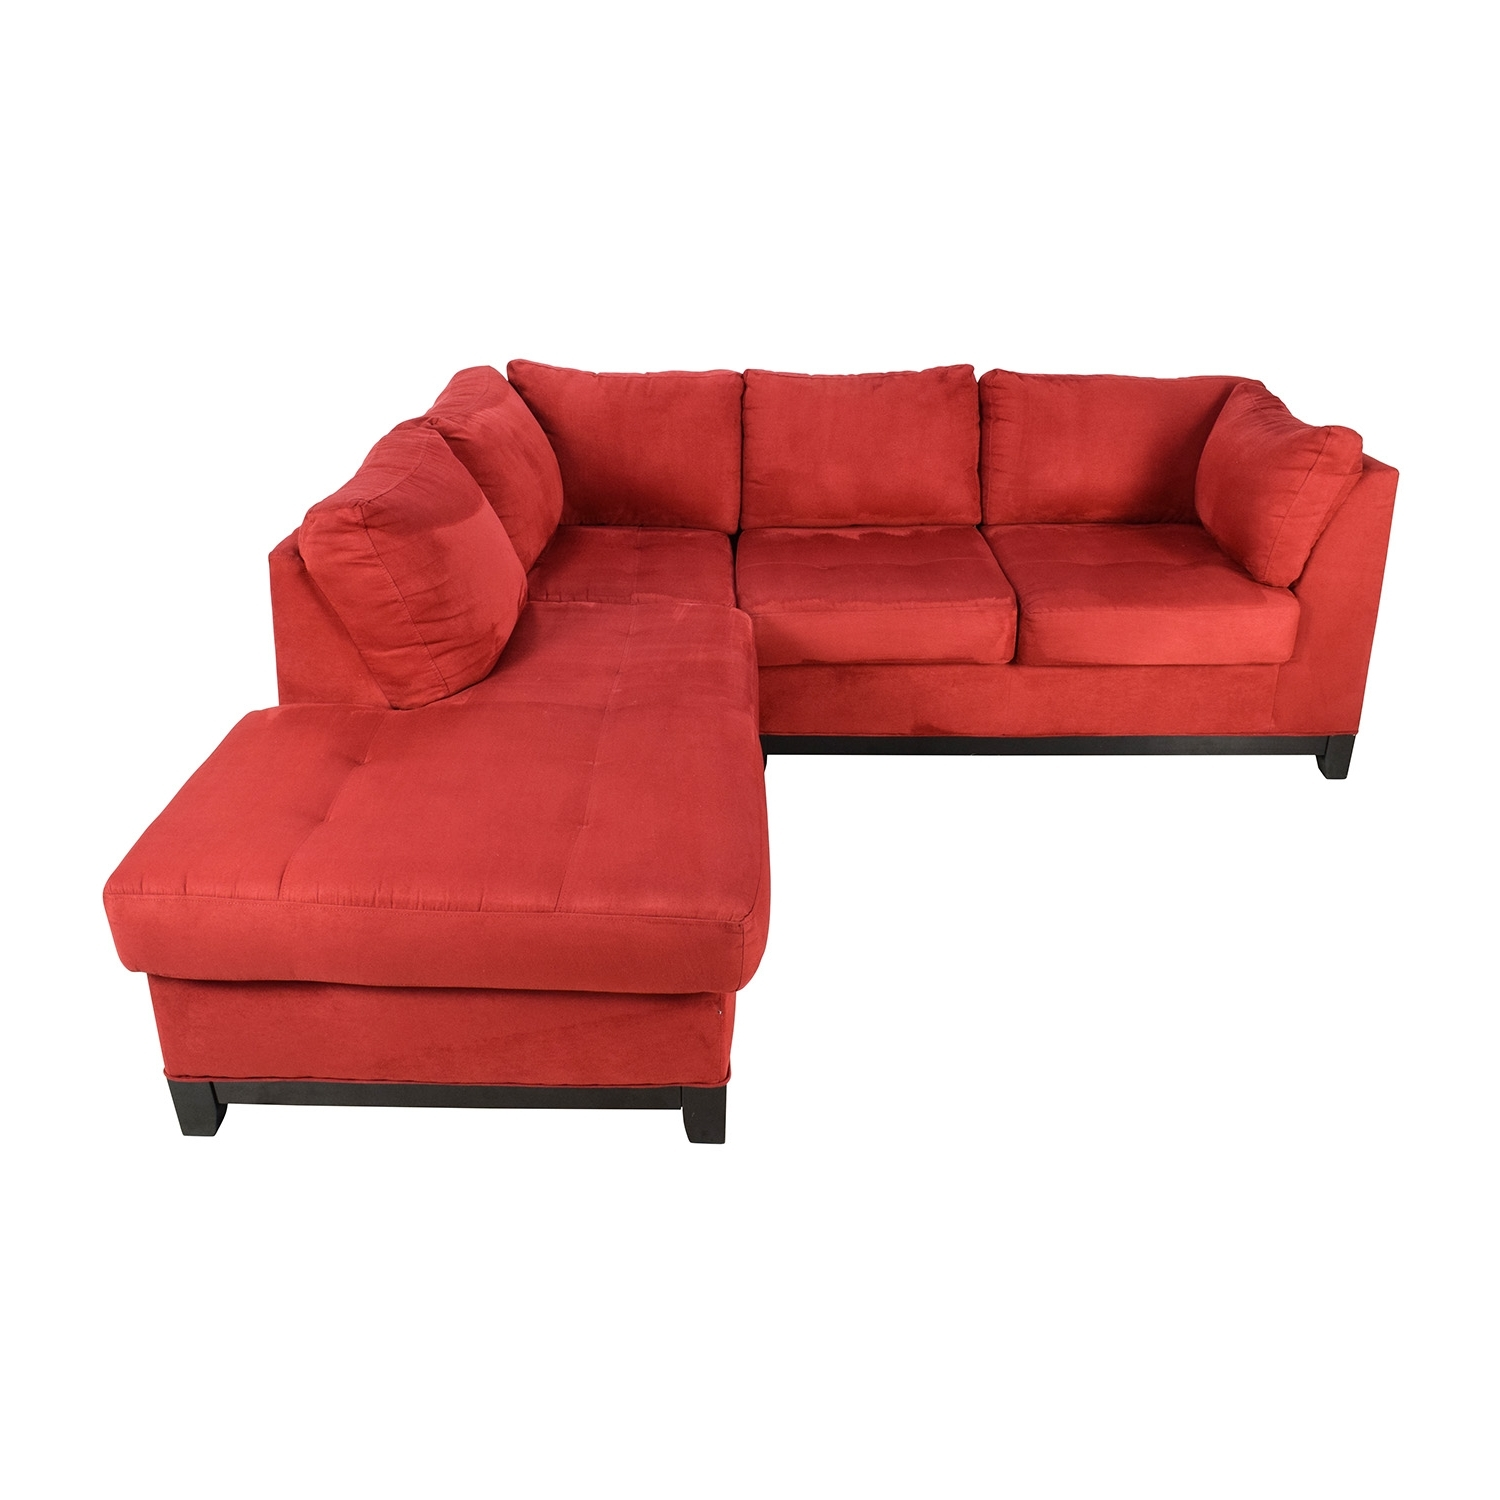 [%67% Off – Raymour And Flanigan Raymour & Flanigan Zella Red Inside Most Recently Released Sectional Sofas At Raymour And Flanigan|Sectional Sofas At Raymour And Flanigan Regarding Most Recent 67% Off – Raymour And Flanigan Raymour & Flanigan Zella Red|Most Recently Released Sectional Sofas At Raymour And Flanigan Inside 67% Off – Raymour And Flanigan Raymour & Flanigan Zella Red|Famous 67% Off – Raymour And Flanigan Raymour & Flanigan Zella Red Within Sectional Sofas At Raymour And Flanigan%] (View 15 of 15)